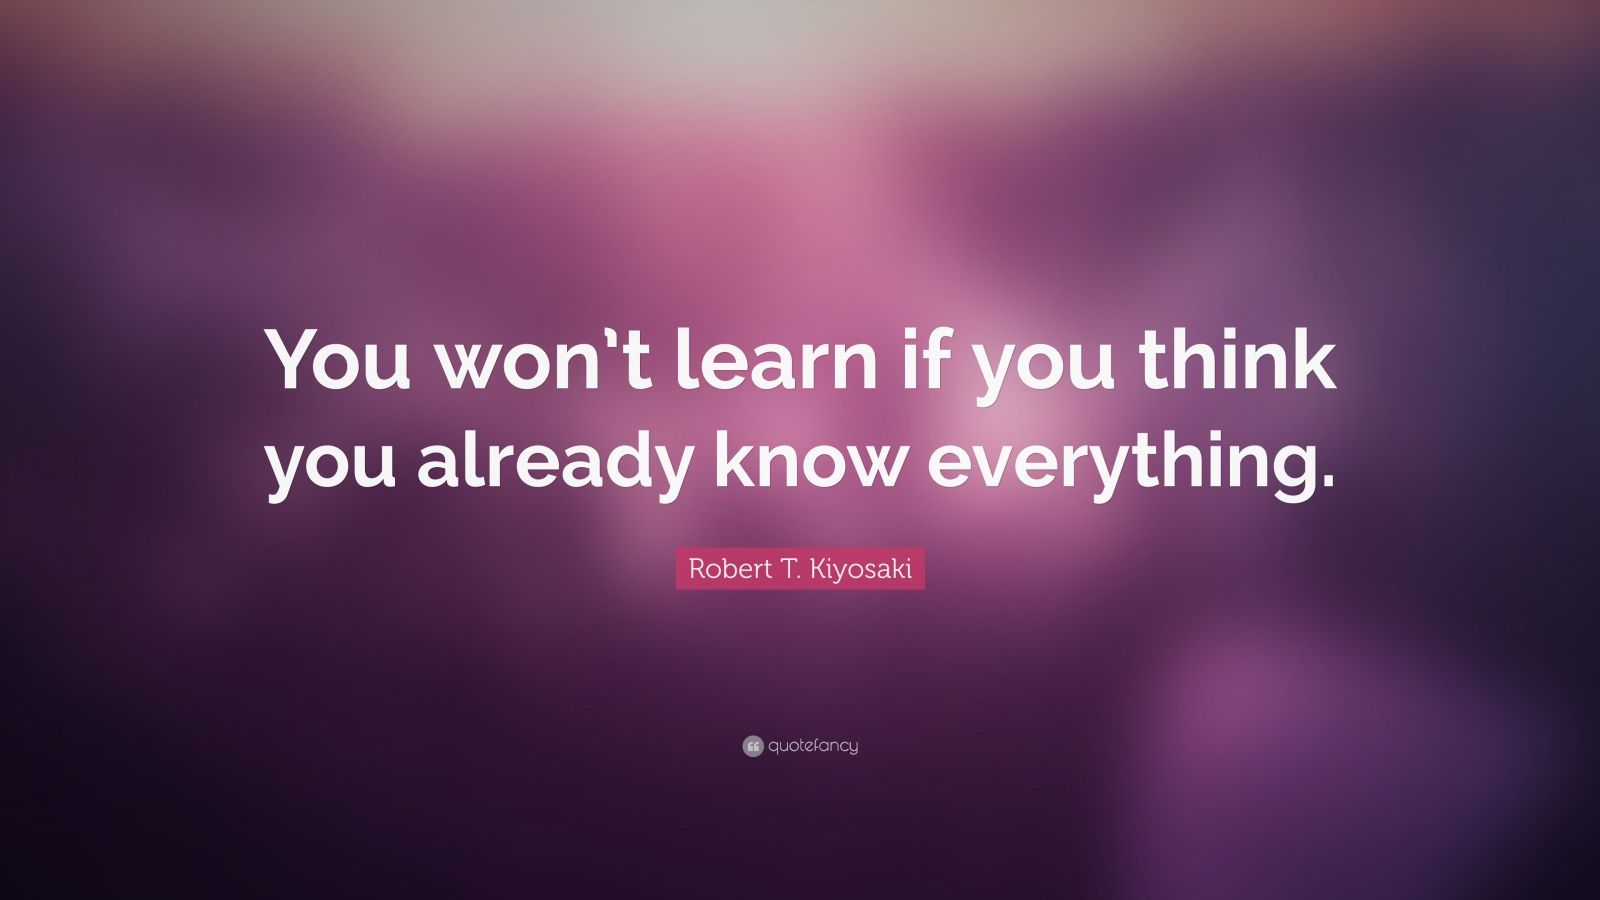 """Robert T. Kiyosaki Quote: """"You won't learn if you think you already know everything."""""""